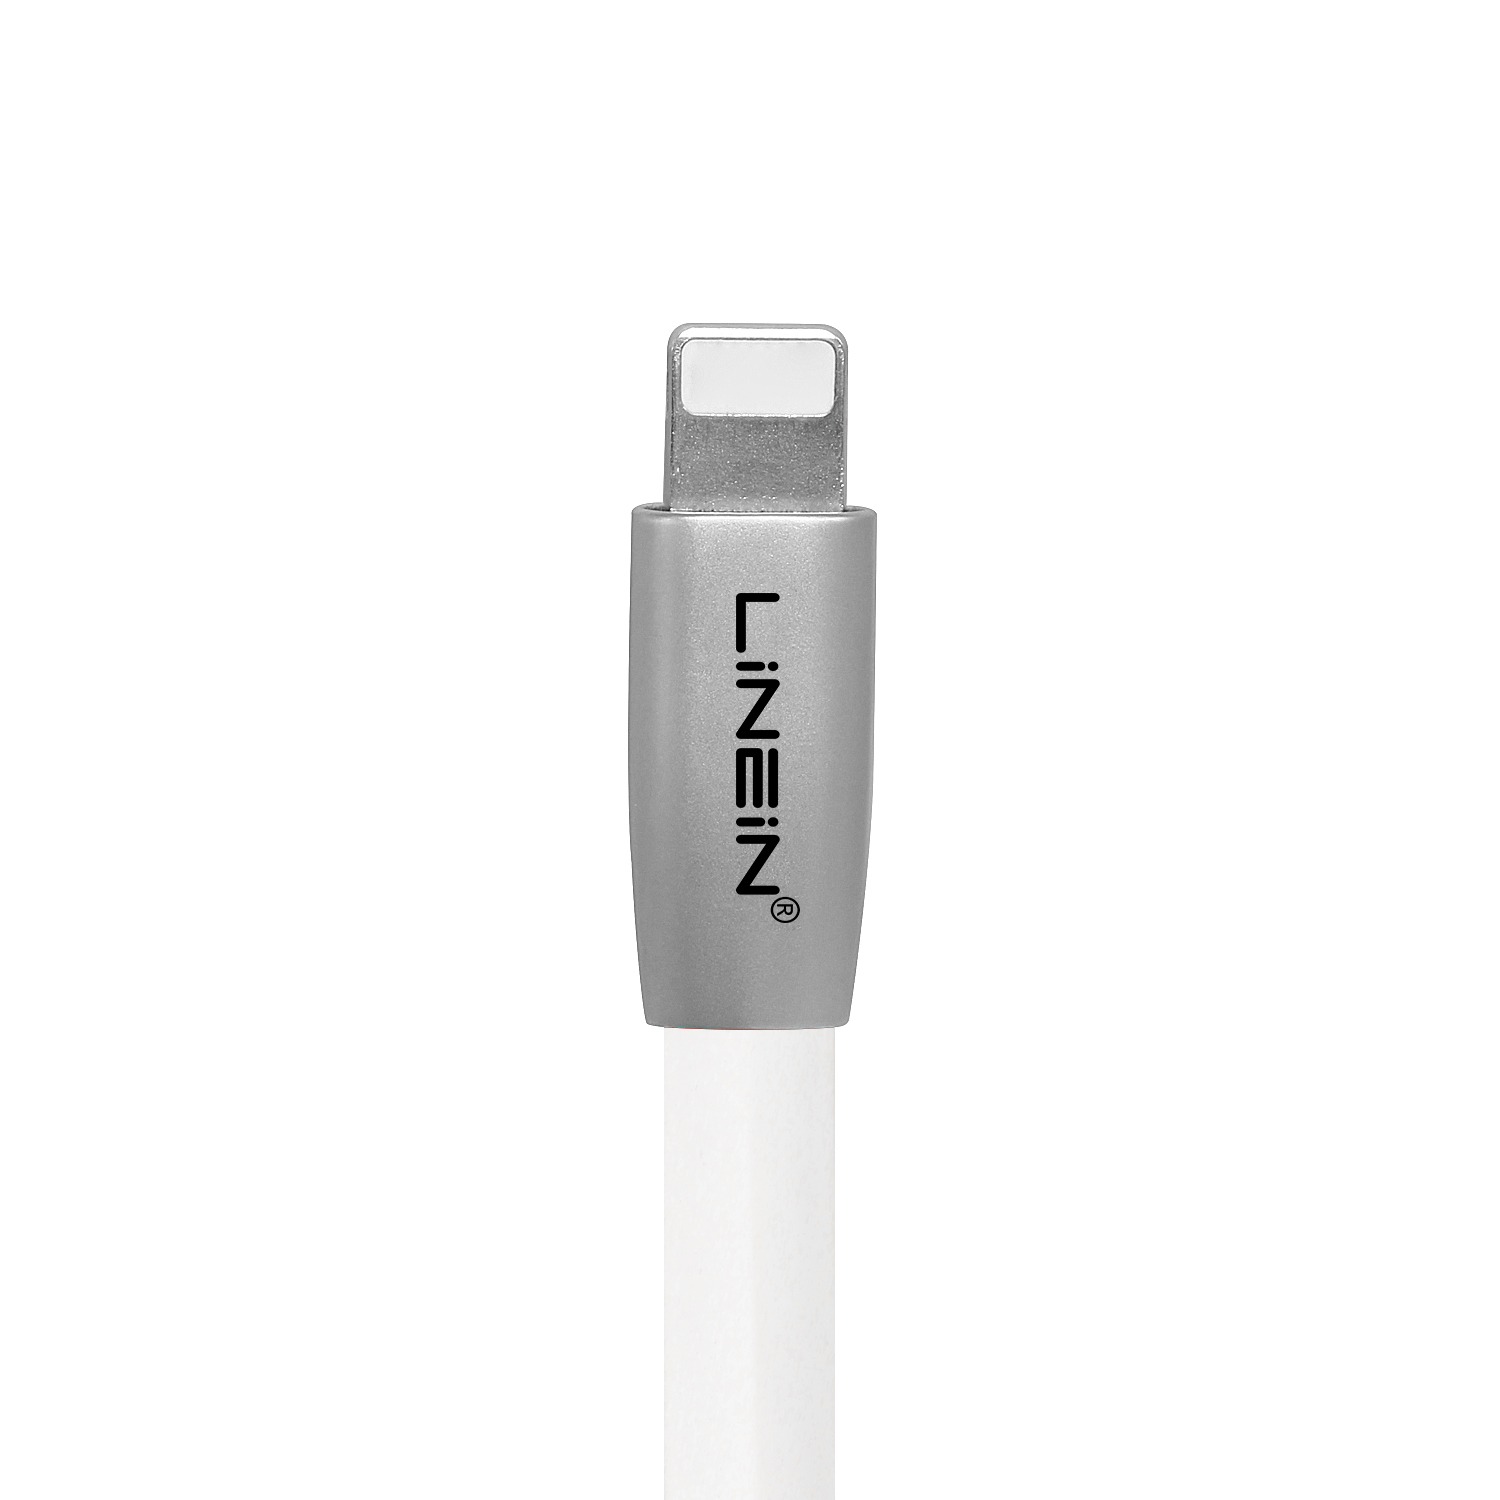 LINEIN cable charger phone data transfer usb charging cable fast  usb cable